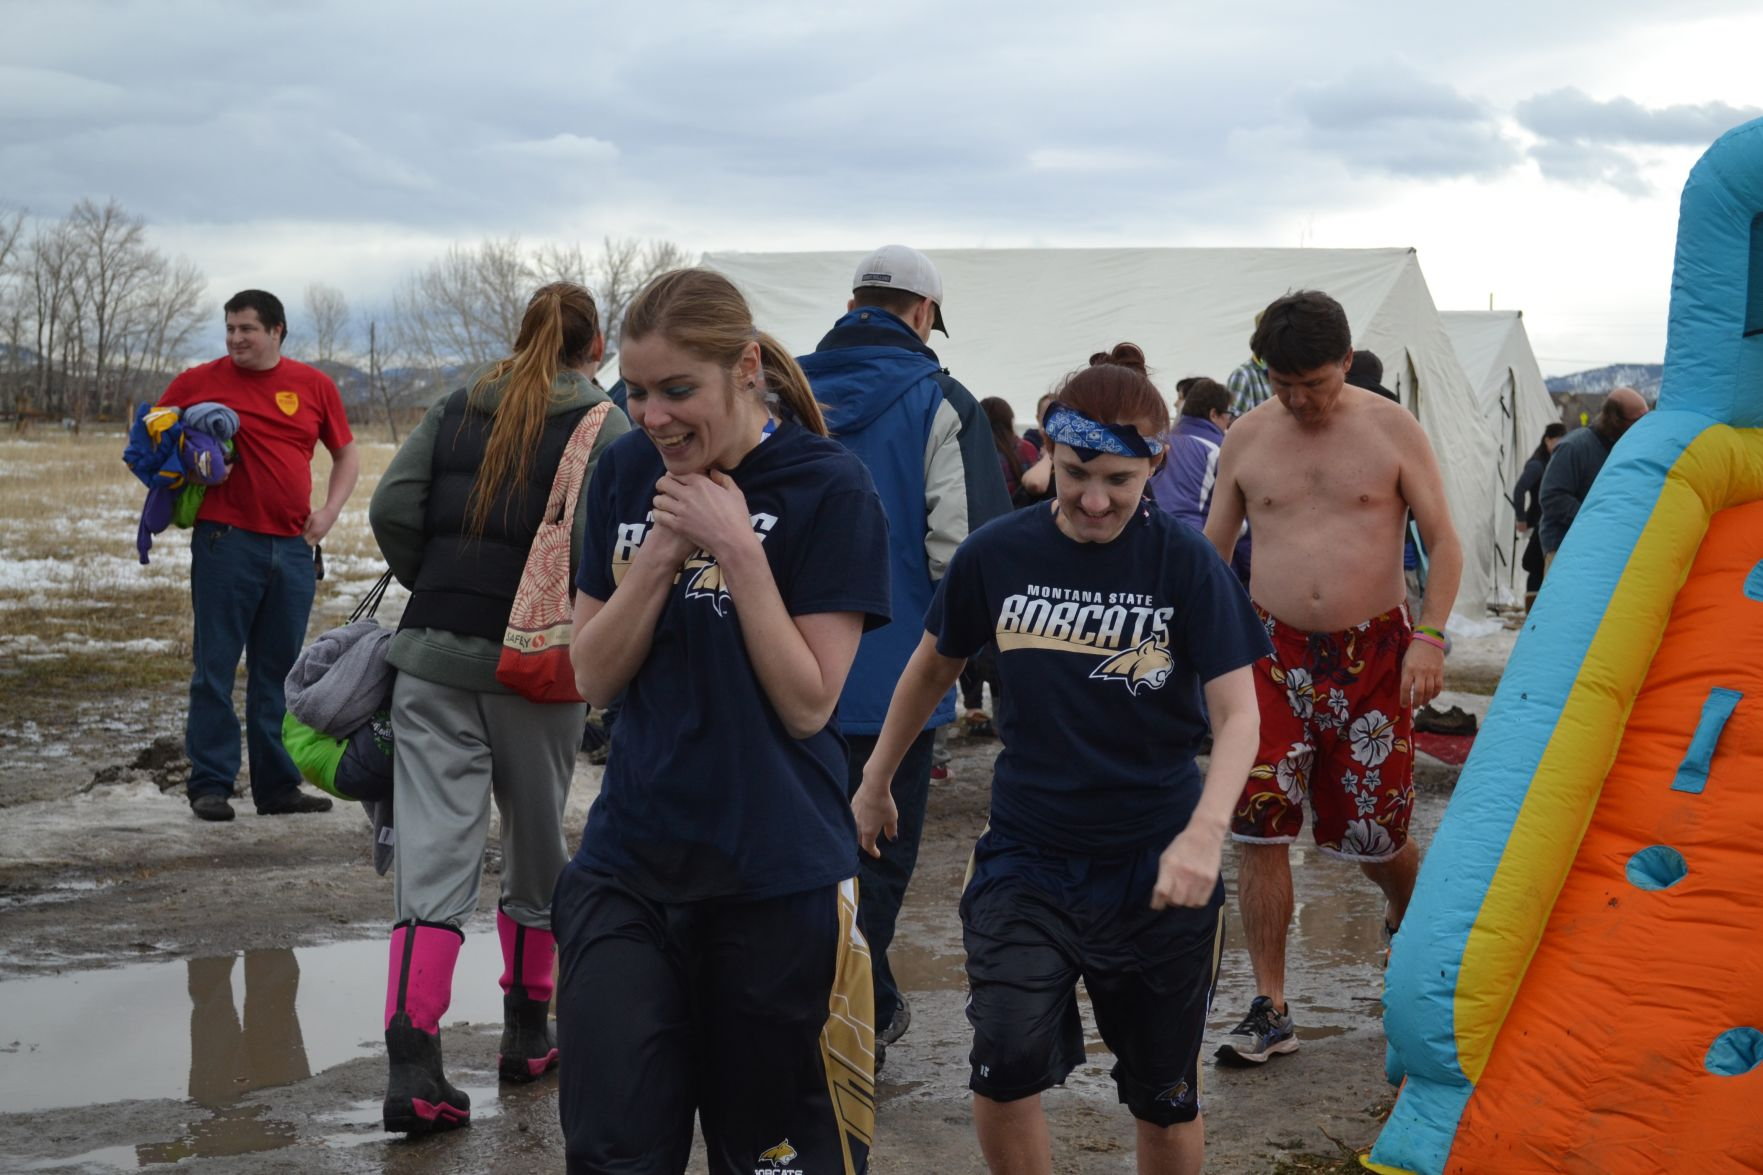 Polar Plunge brings icy water, cool costumes to town this weekend